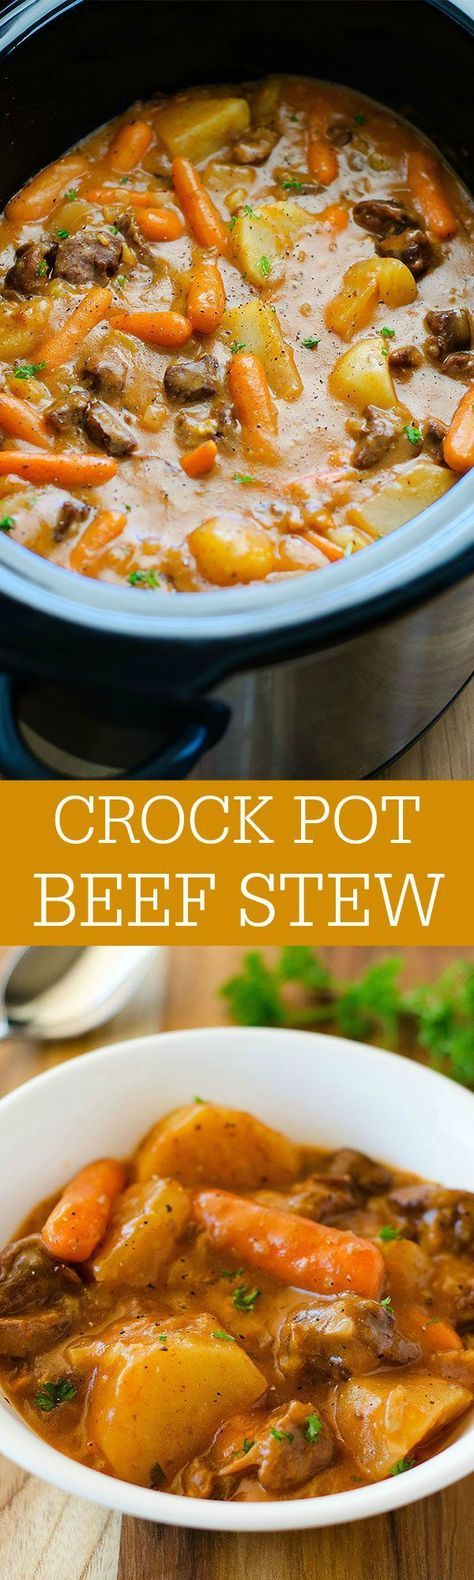 2 (1 oz) packages dry onion soup mix 1/2 teaspoon paprika 2 pounds lean beef stew meat (cut up into bite sized pieces) 5 medium potatoes, peeled and diced 2 to 3 cups baby carrots 1 small Onion, chopped 2 (10 oz.) cans cream of celery soup 1 cup ketchup